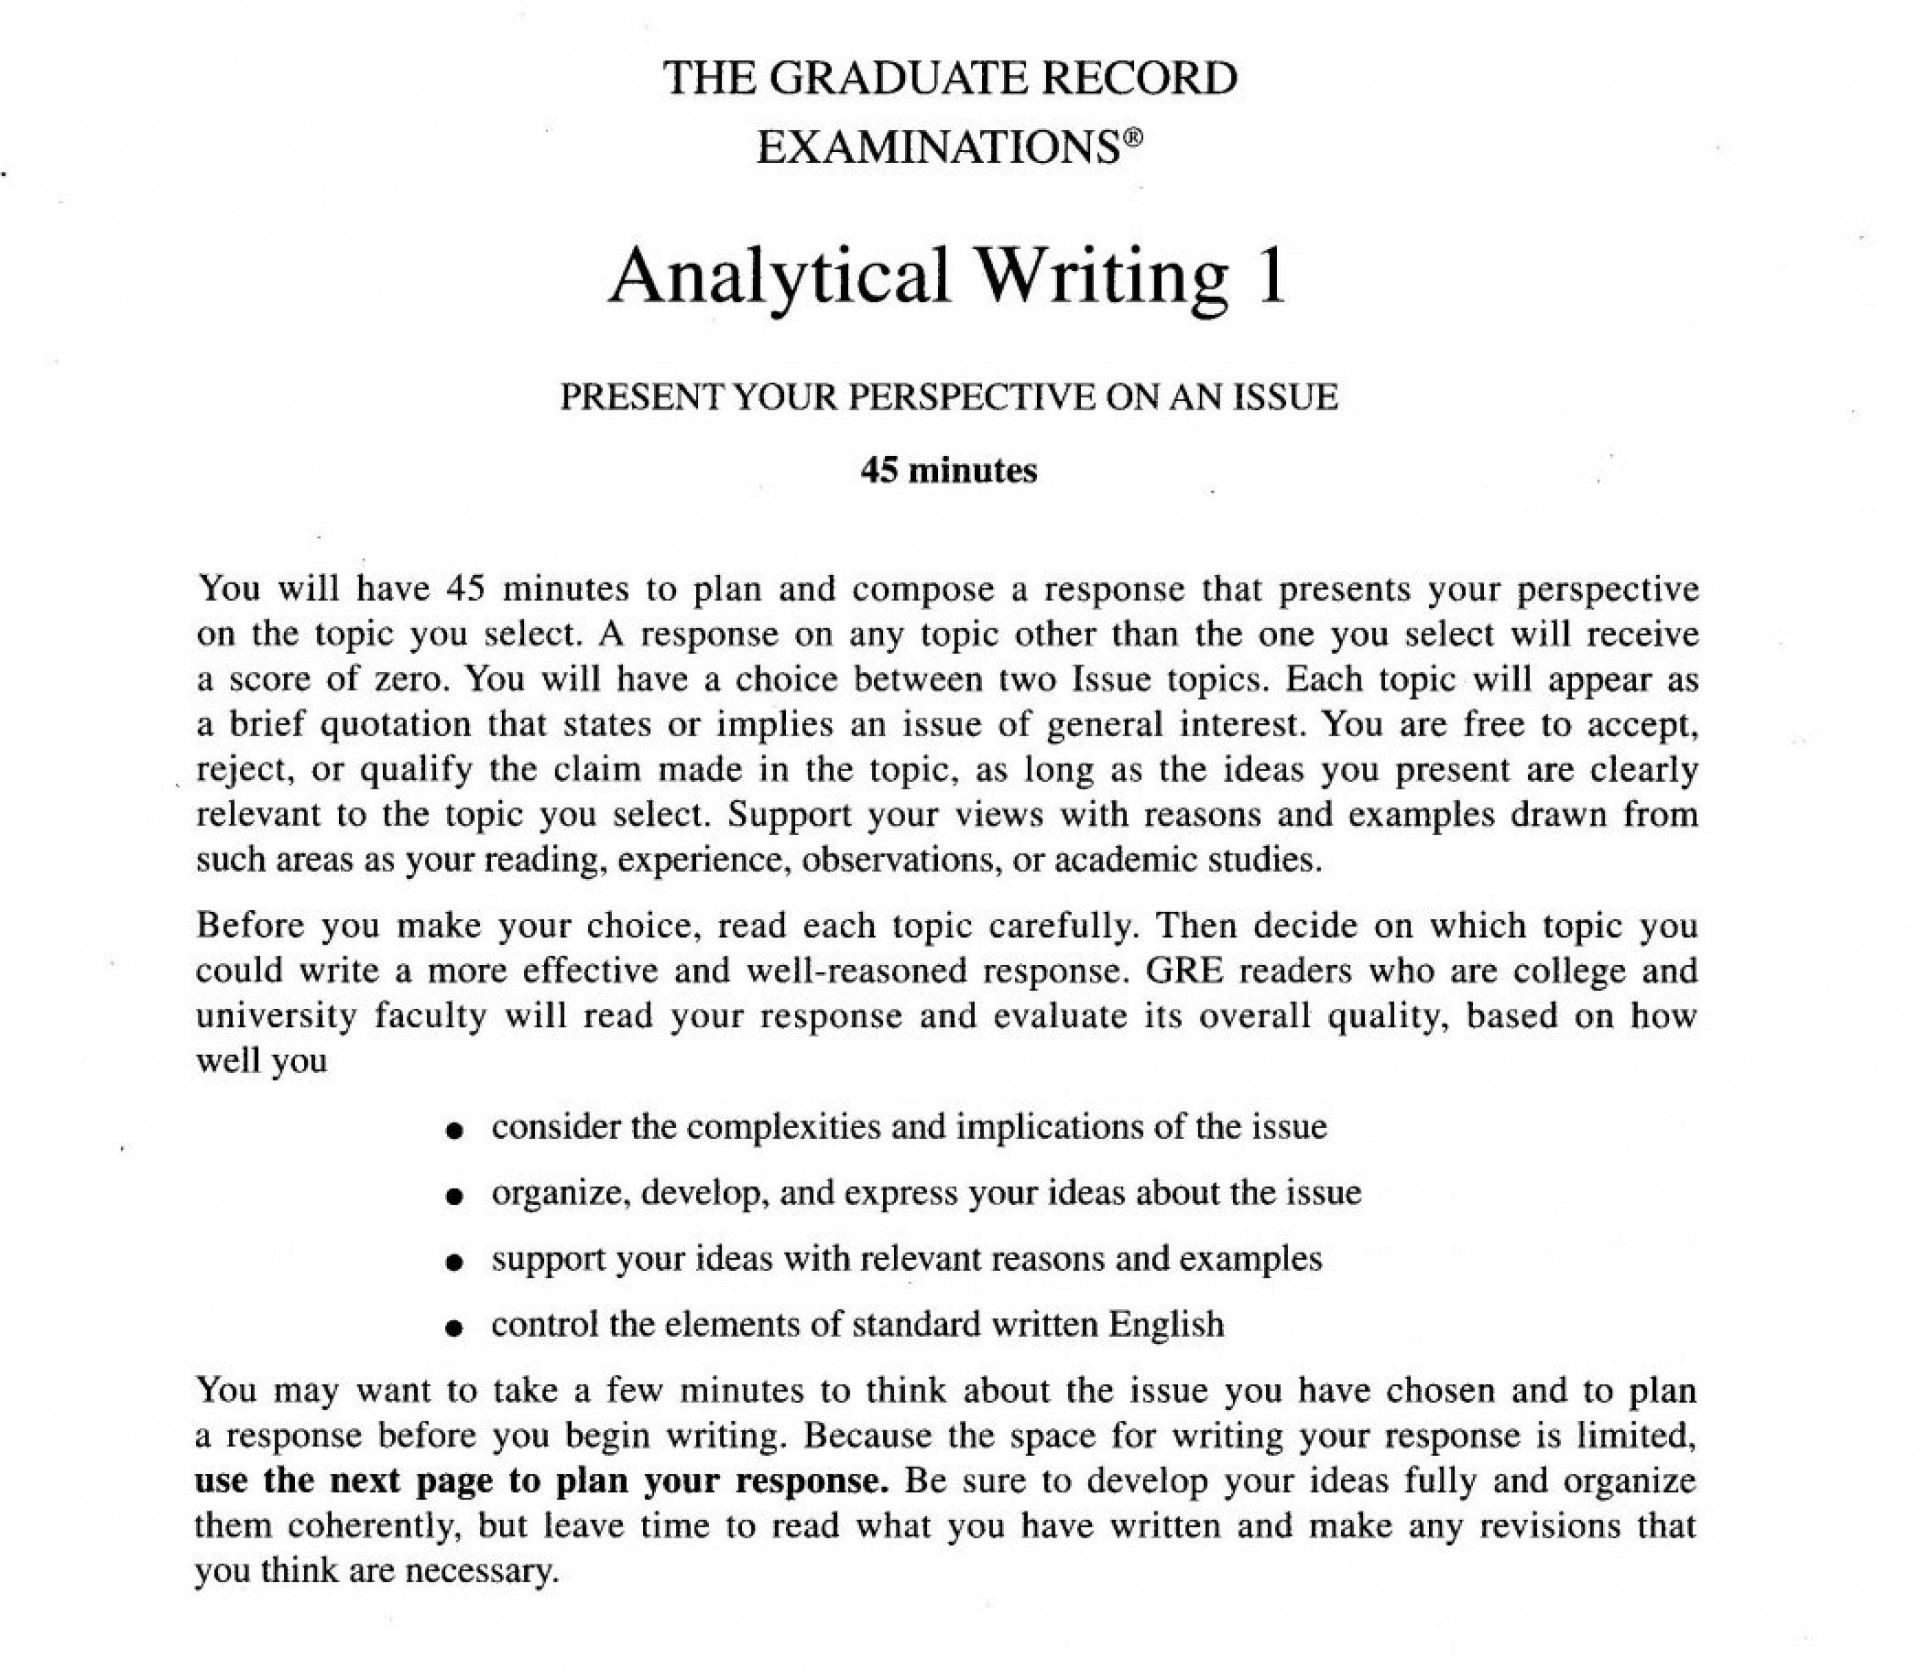 003 Essay Example Ethical Argument On Halloween T How To Write An For Medical School Admission 1048x912 Amazing Samples Examples 1920